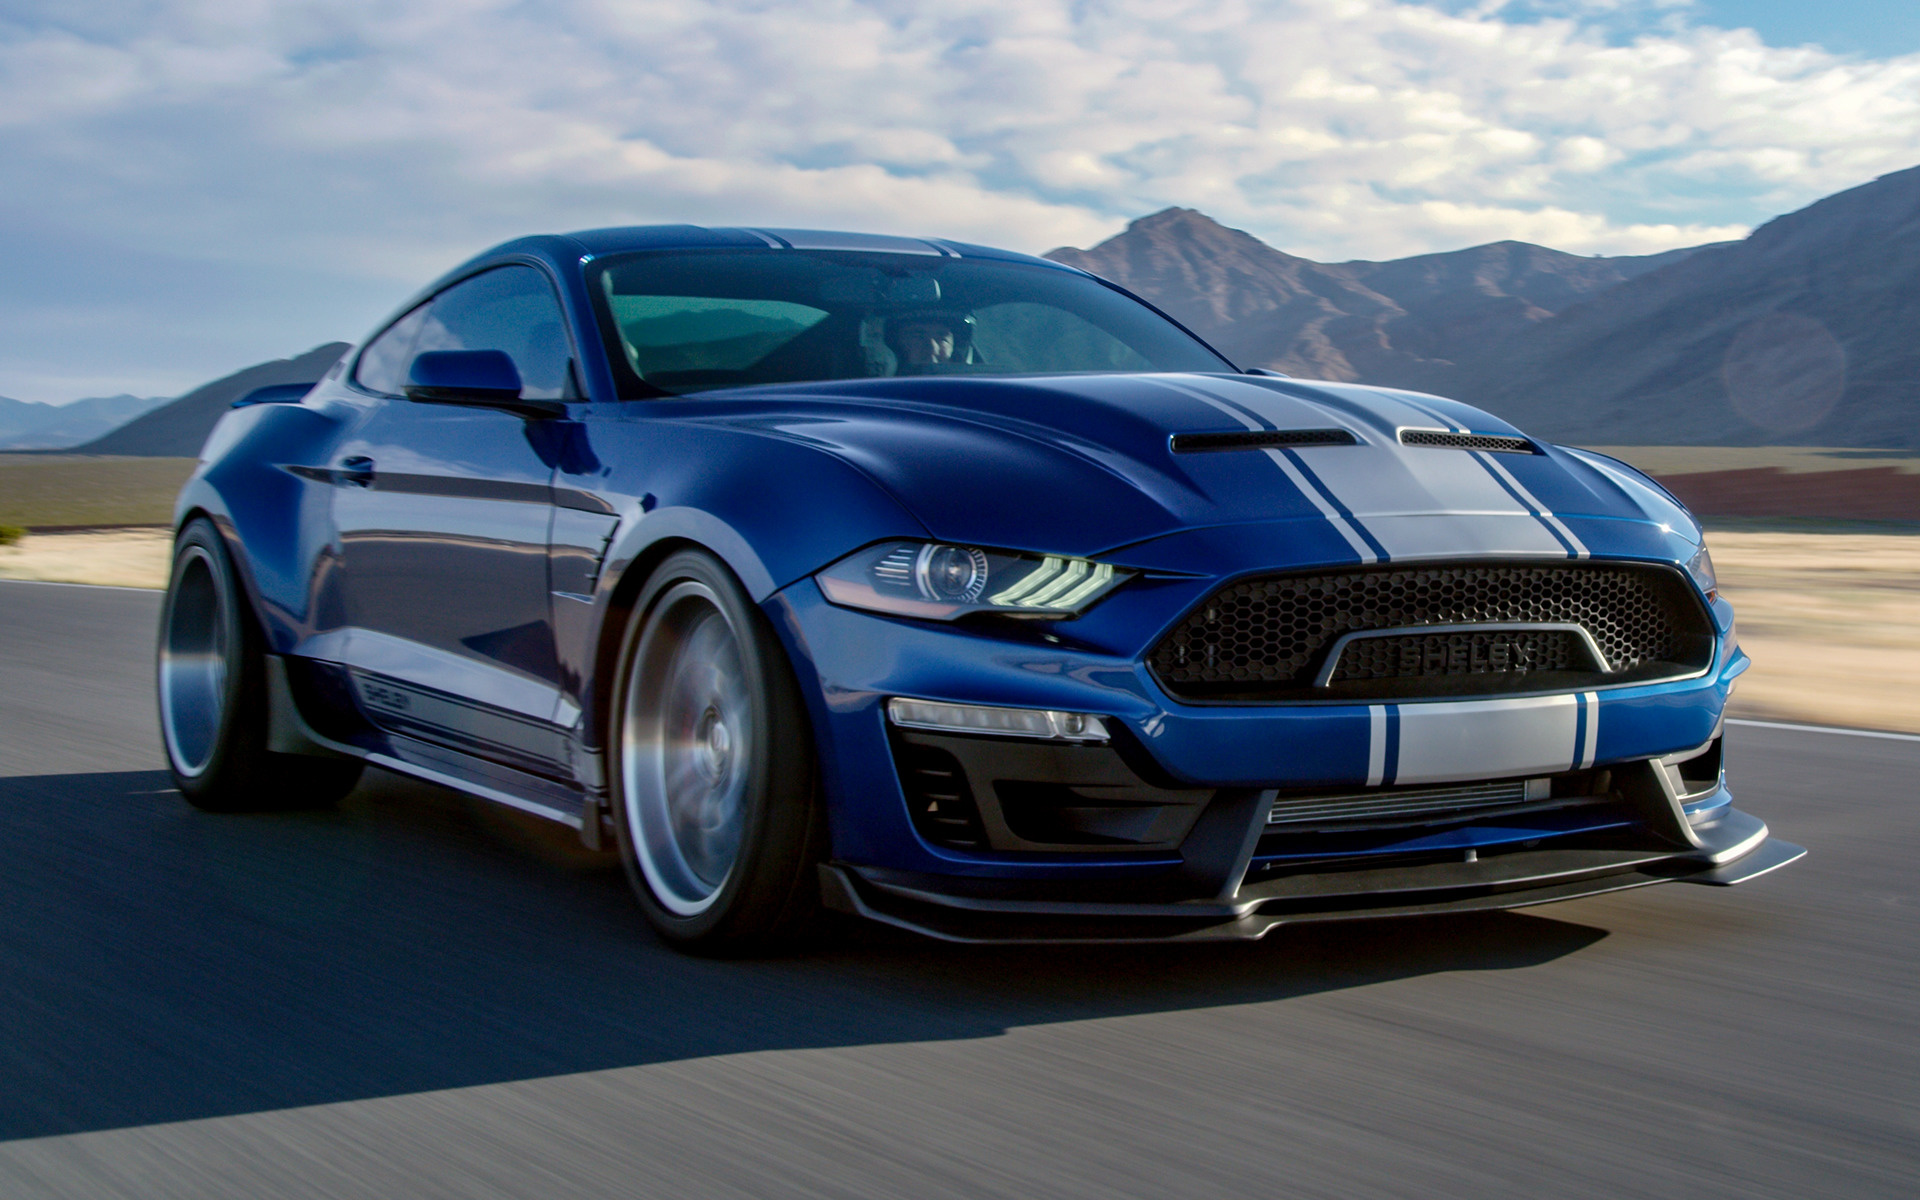 Widebody Cars Wallpaper 2018 Shelby Super Snake Widebody Wallpapers And Hd